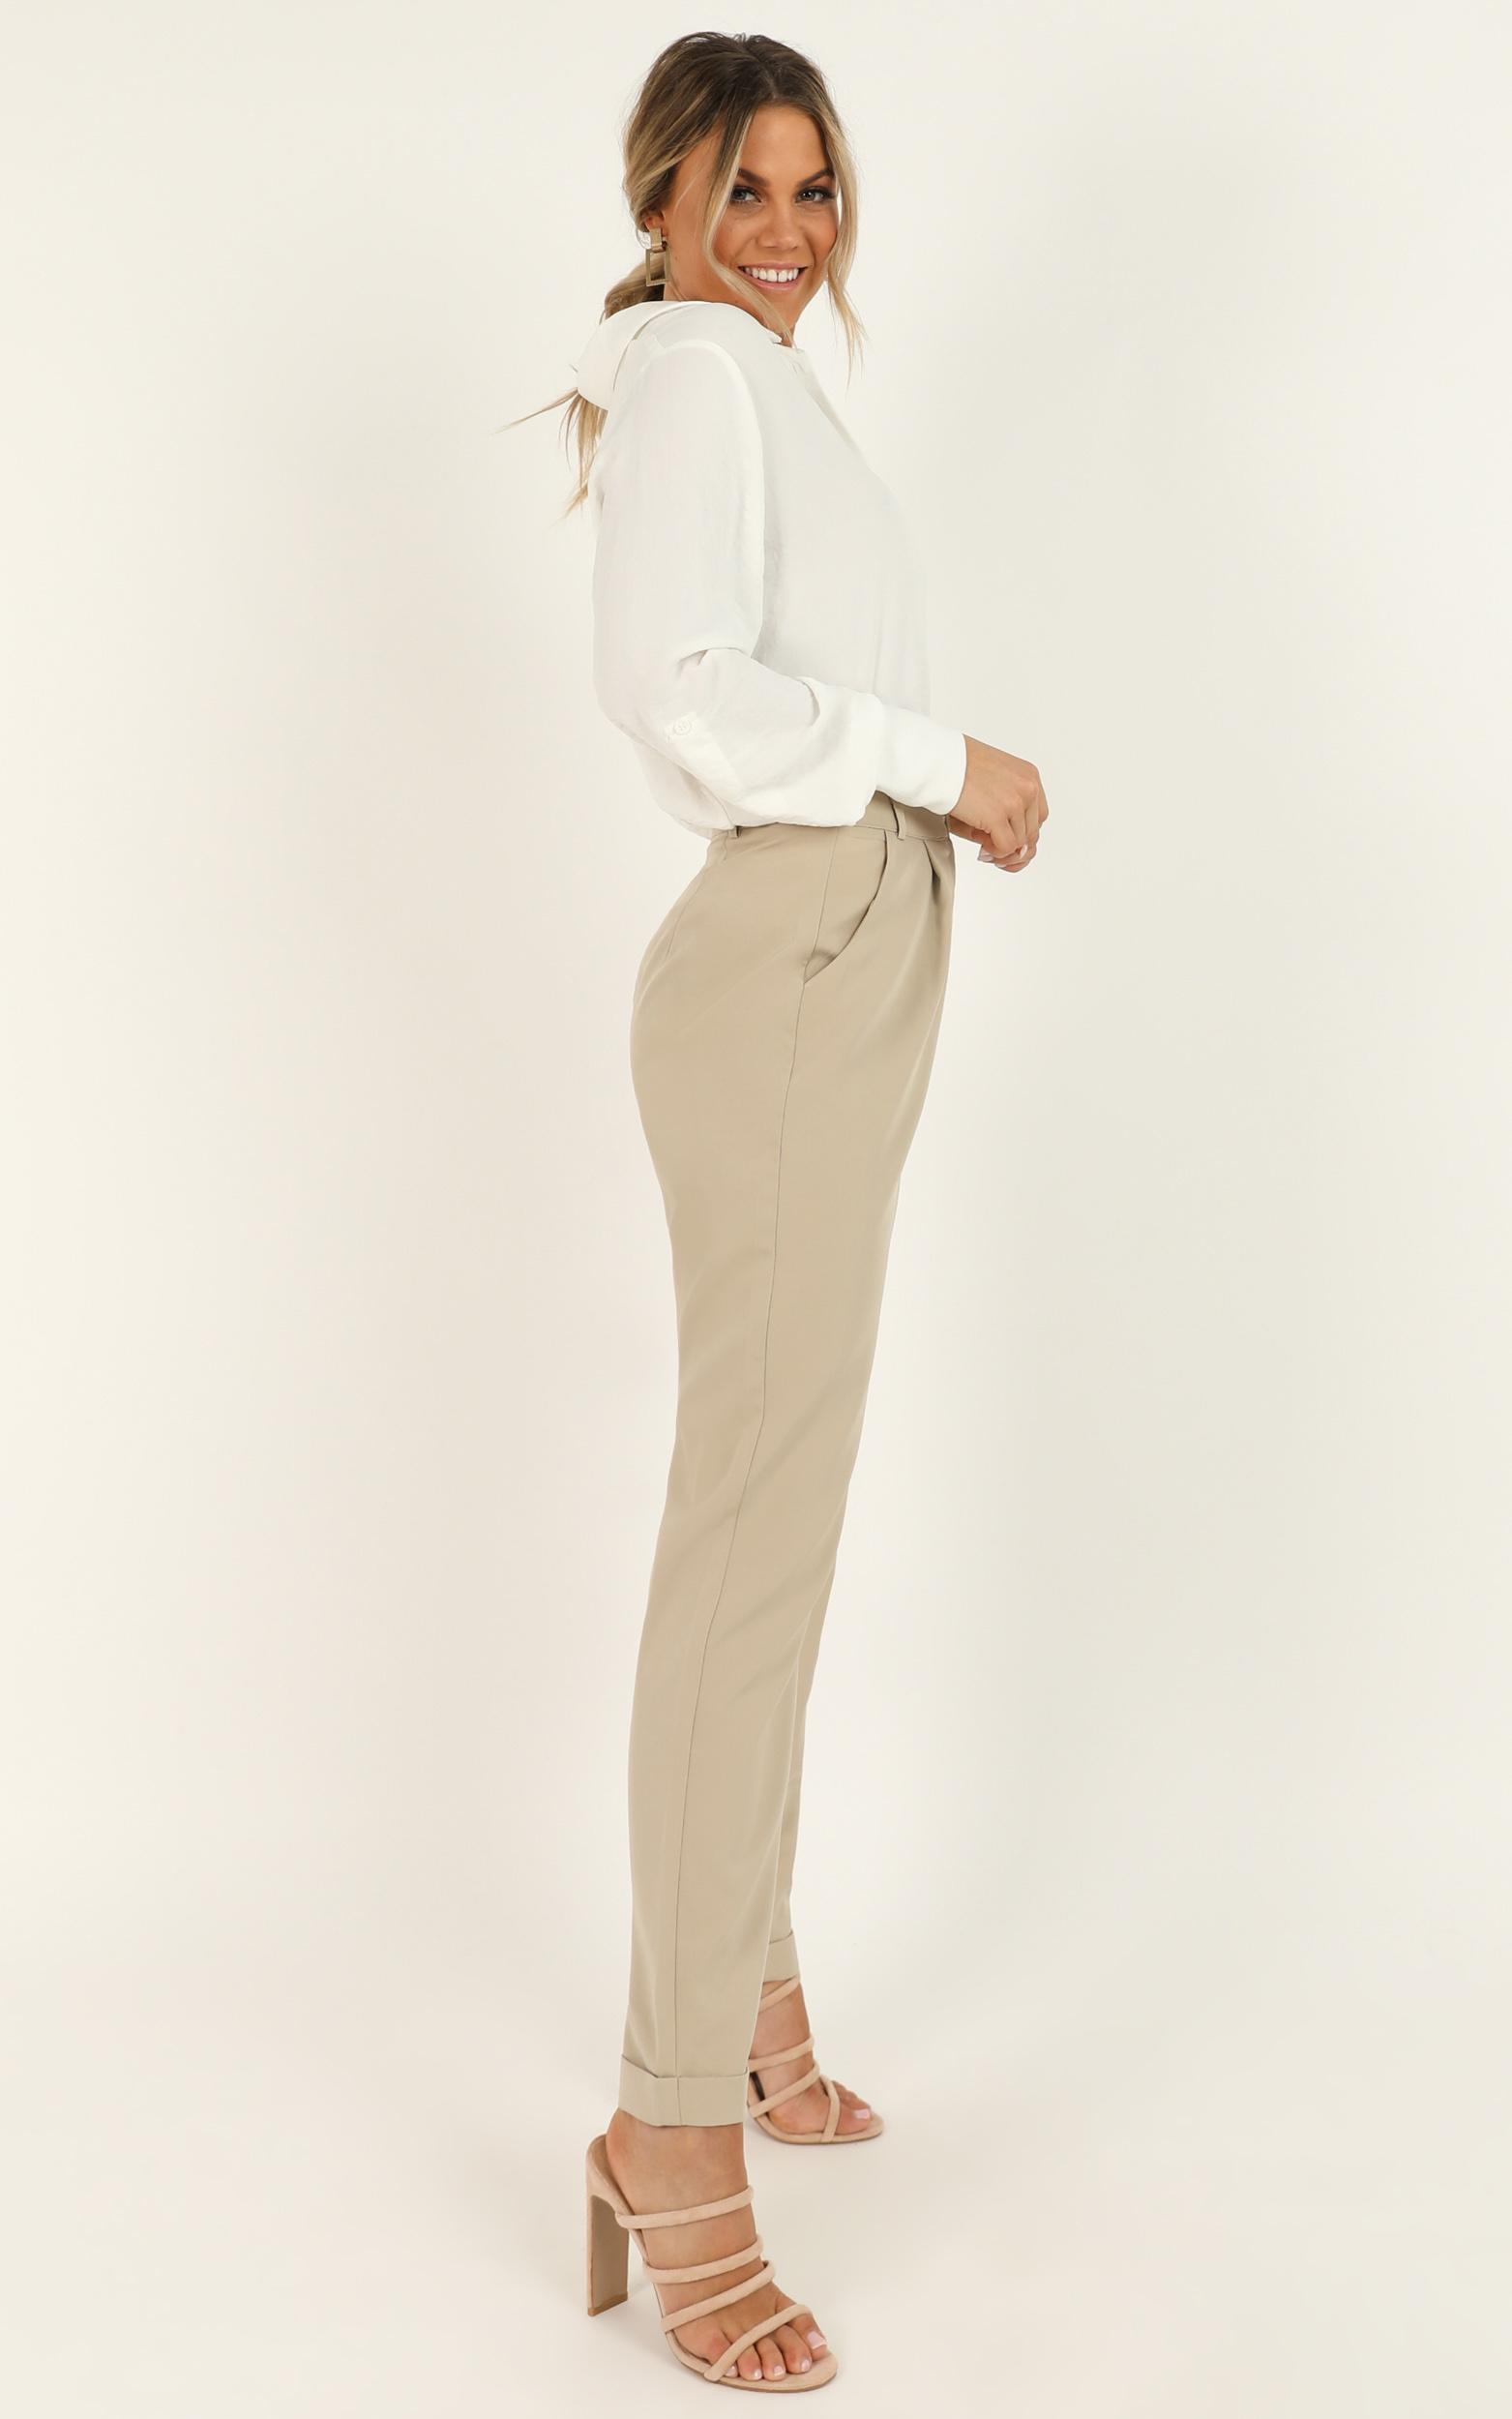 Goal Stomper Pants in stone - 20 (XXXXL), Grey, hi-res image number null